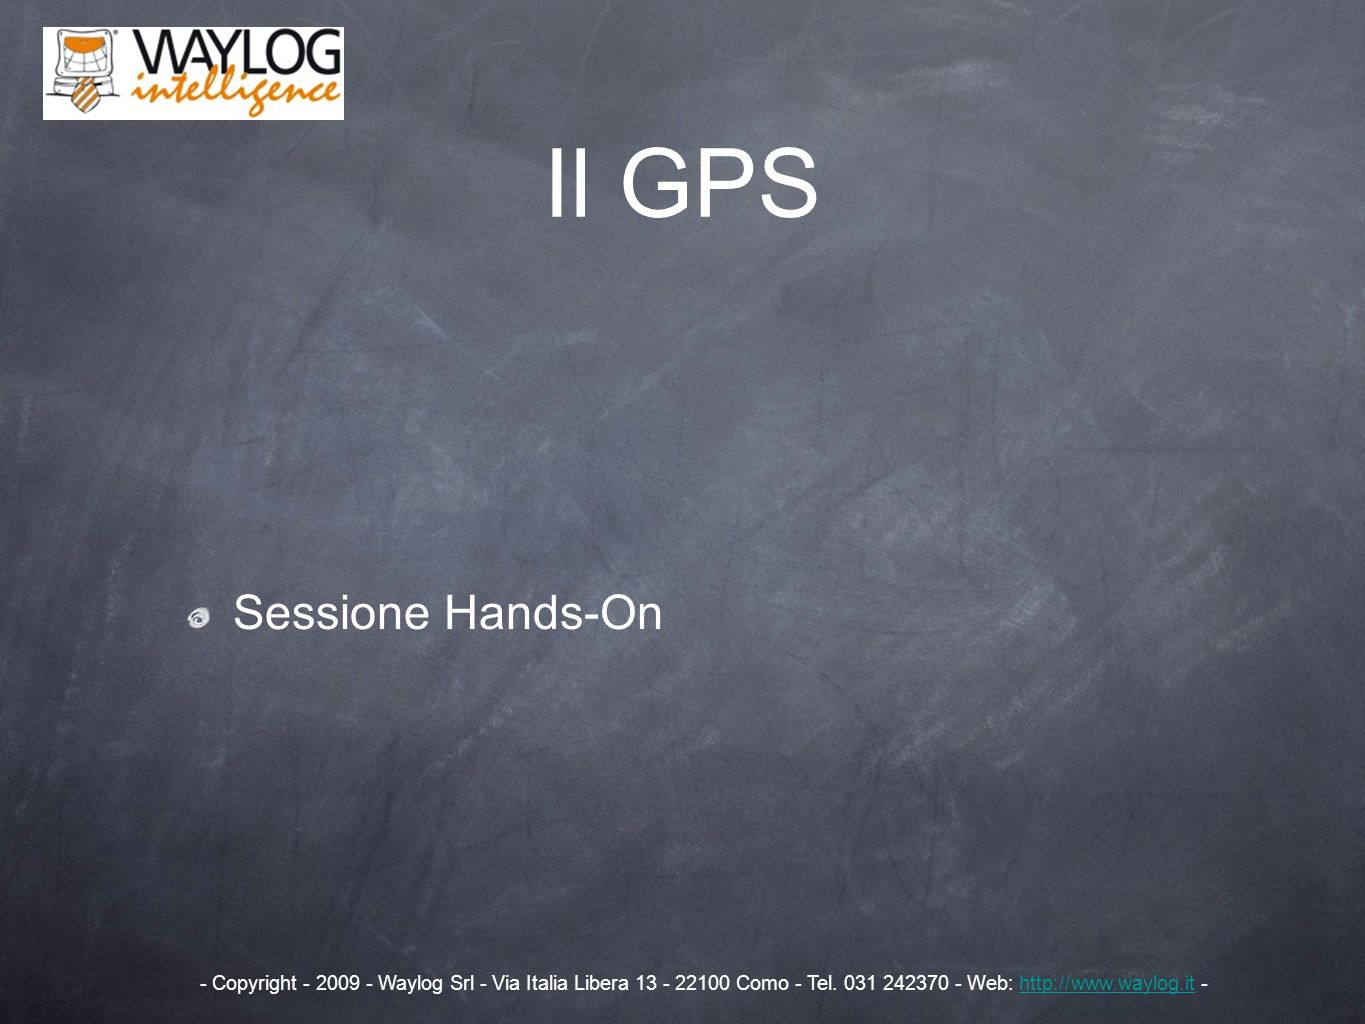 Sessione Hands-On Il GPS - Copyright - 2009 - Waylog Srl - Via Italia Libera 13 - 22100 Como - Tel. 031 242370 - Web: http://www.waylog.it -http://www